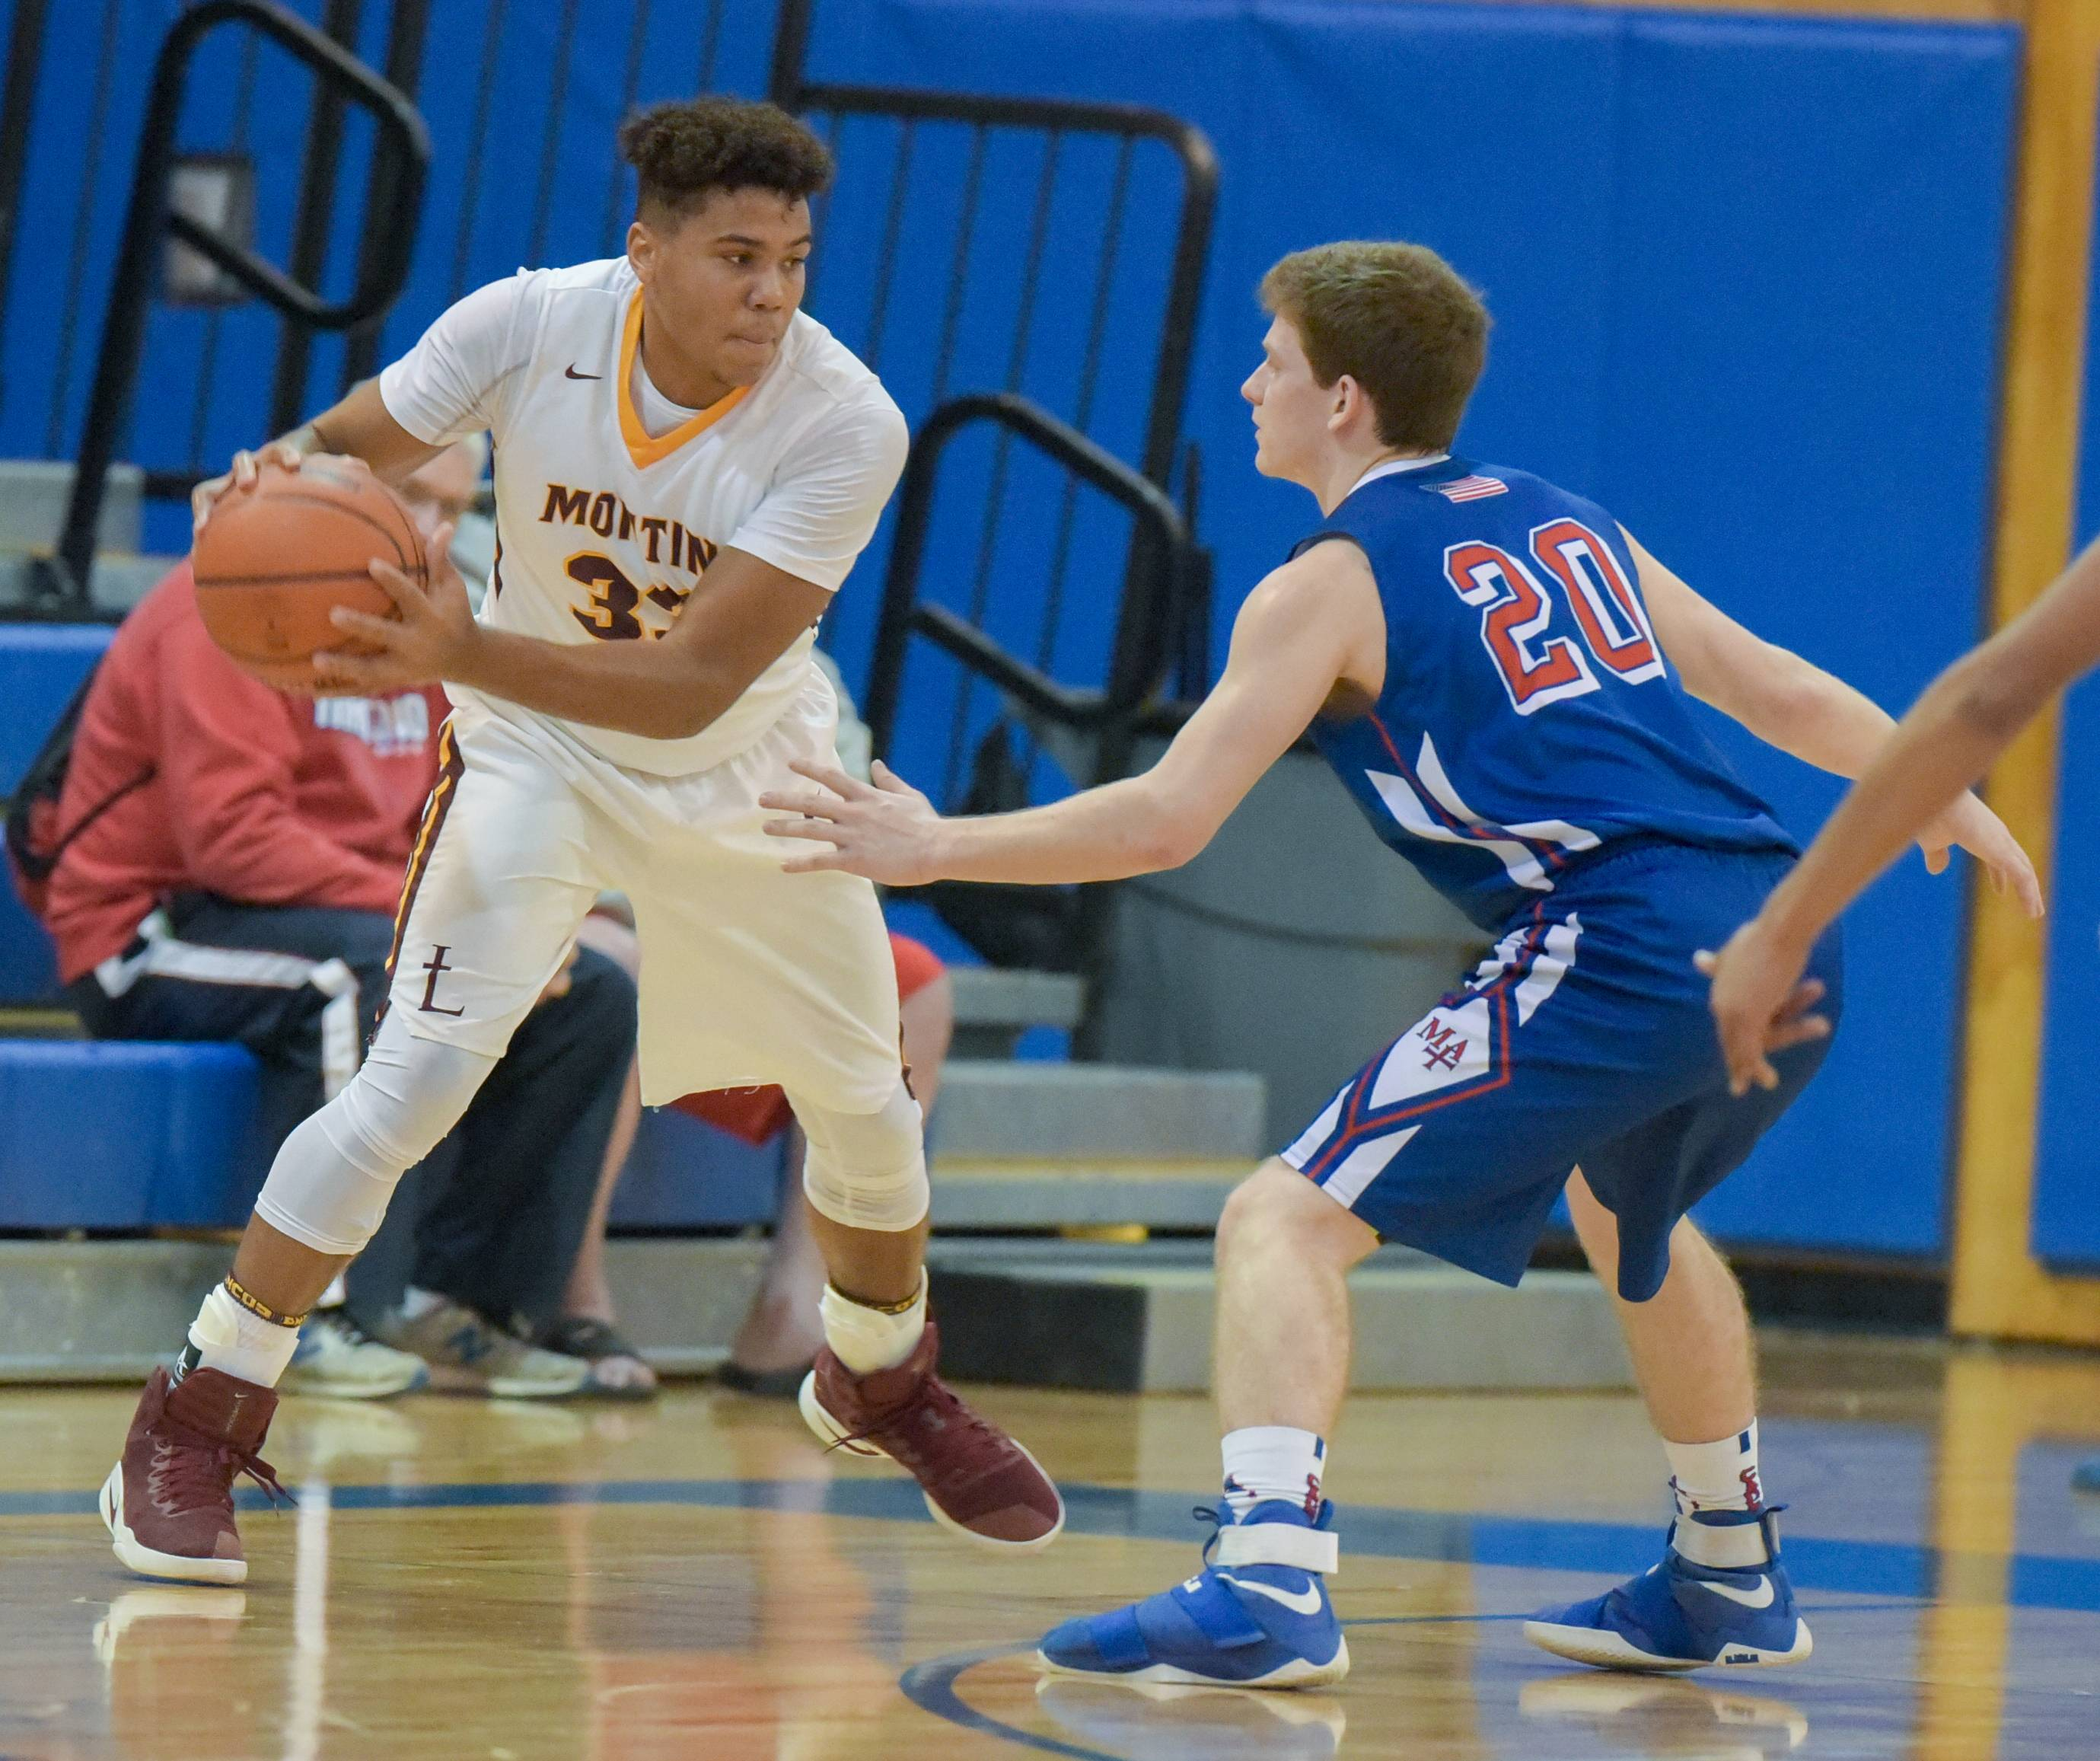 Inspired Thompson leads Montini past Marmion